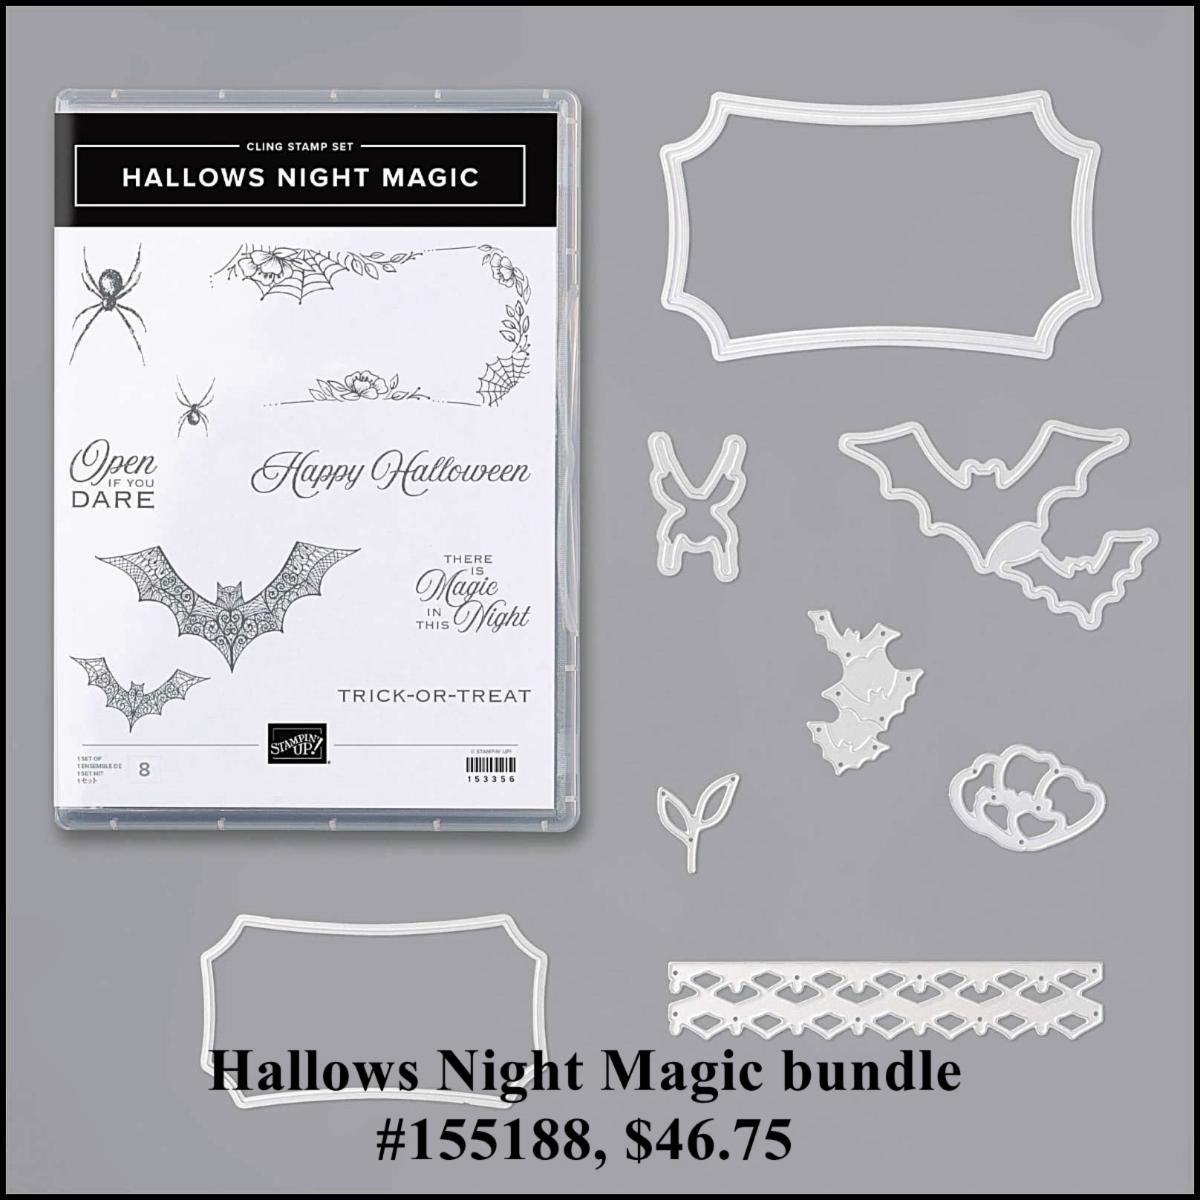 Spooky fun crafting with the Magic In This Night suite.